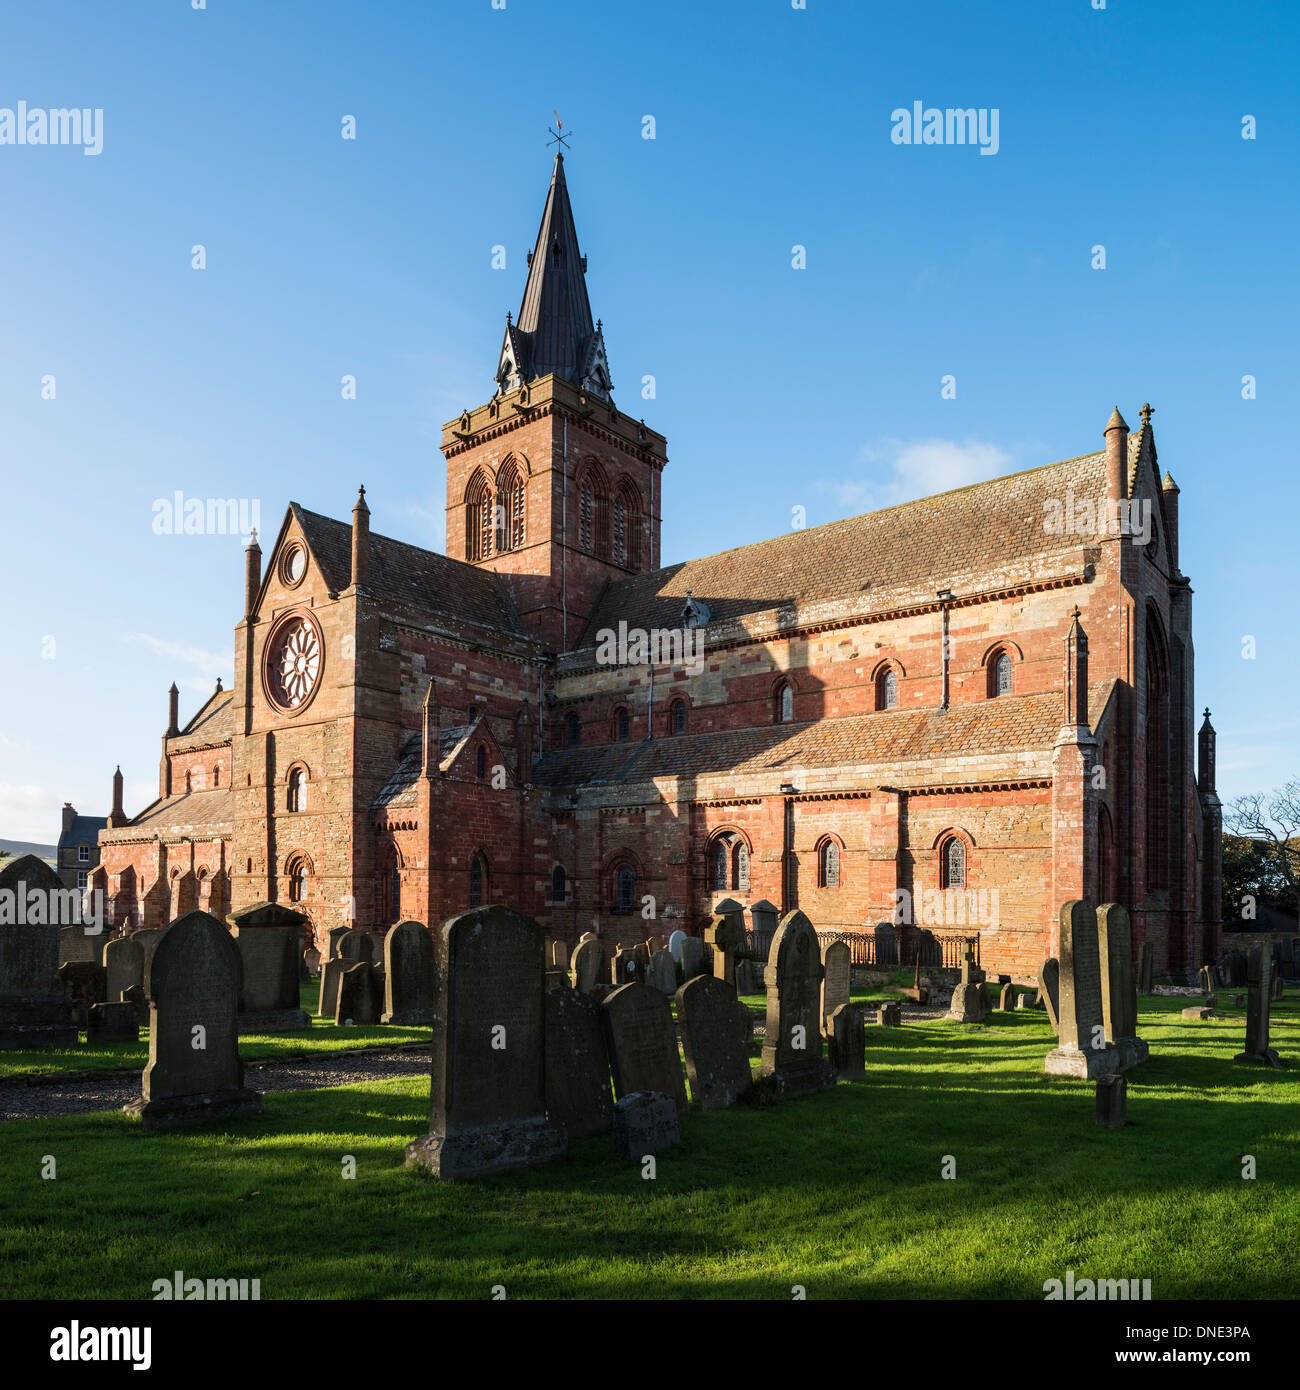 St. Magnus Cathedral and cemetery, Kirkwall, Orkney, Scotland - Stock Image